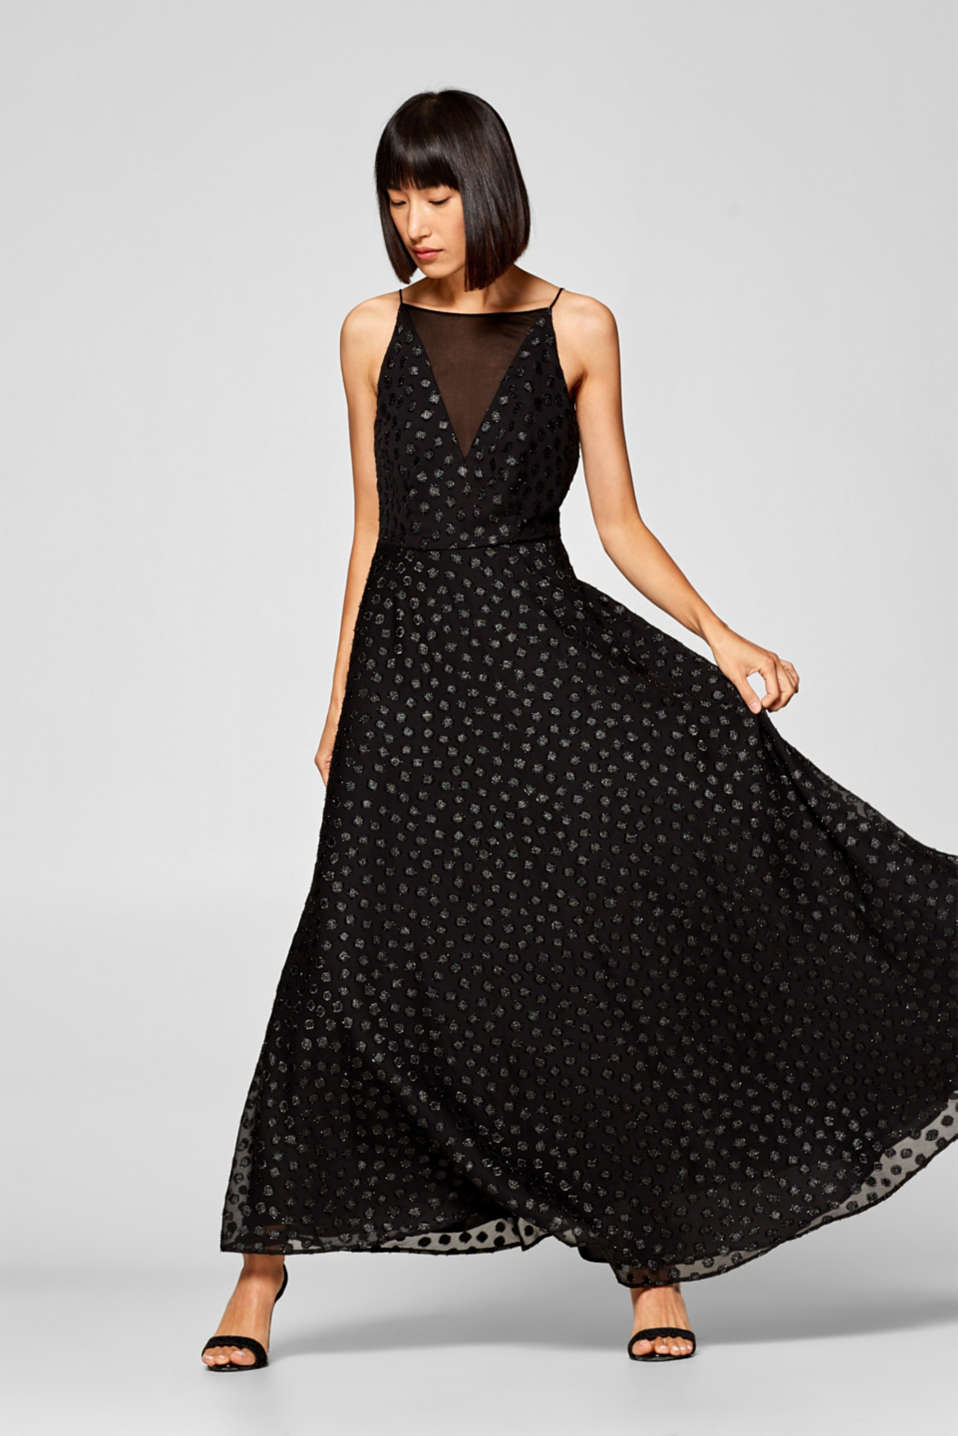 Esprit - Evening dress with glittering jacquard dots at our Online Shop 8f1e75a91a